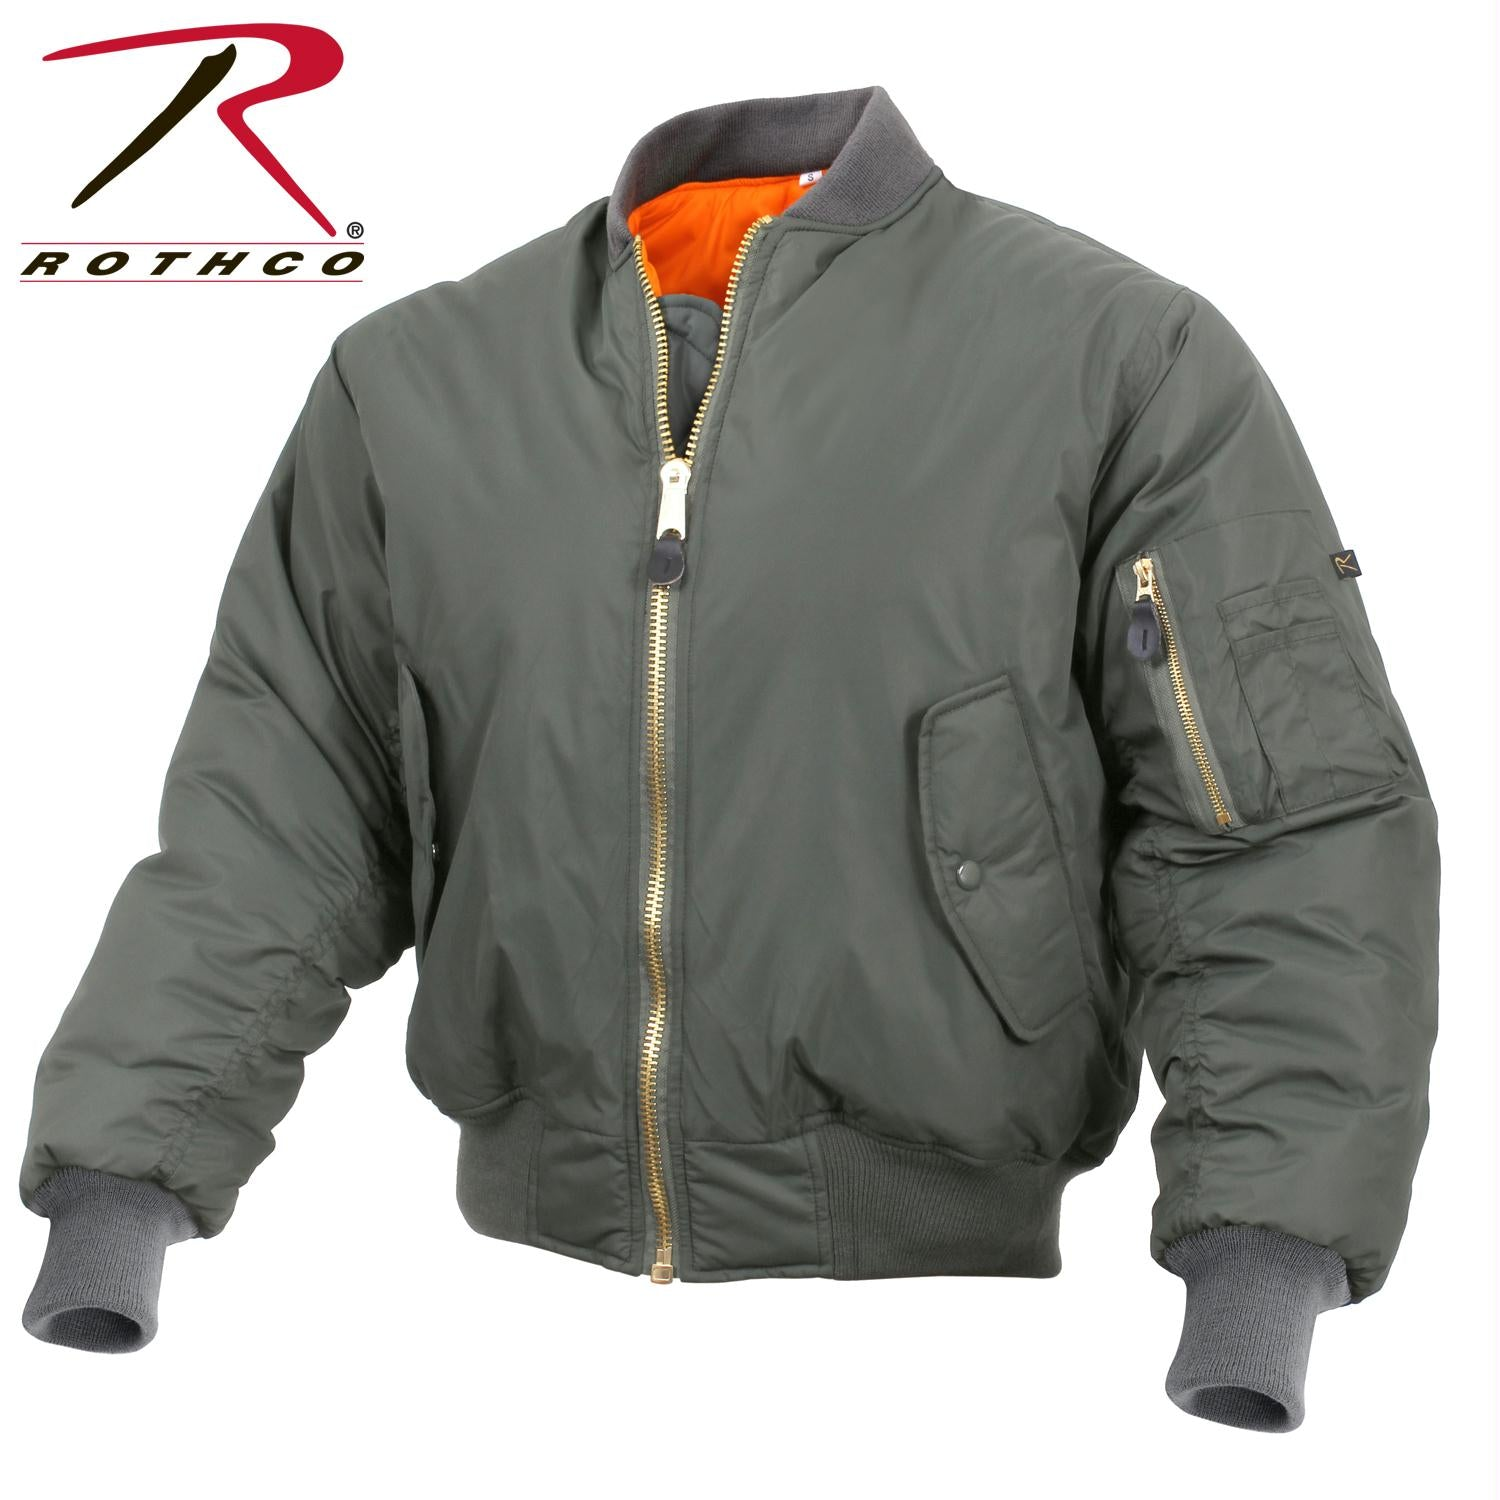 Rothco Enhanced Nylon MA-1 Flight Jacket - Sage Green / S